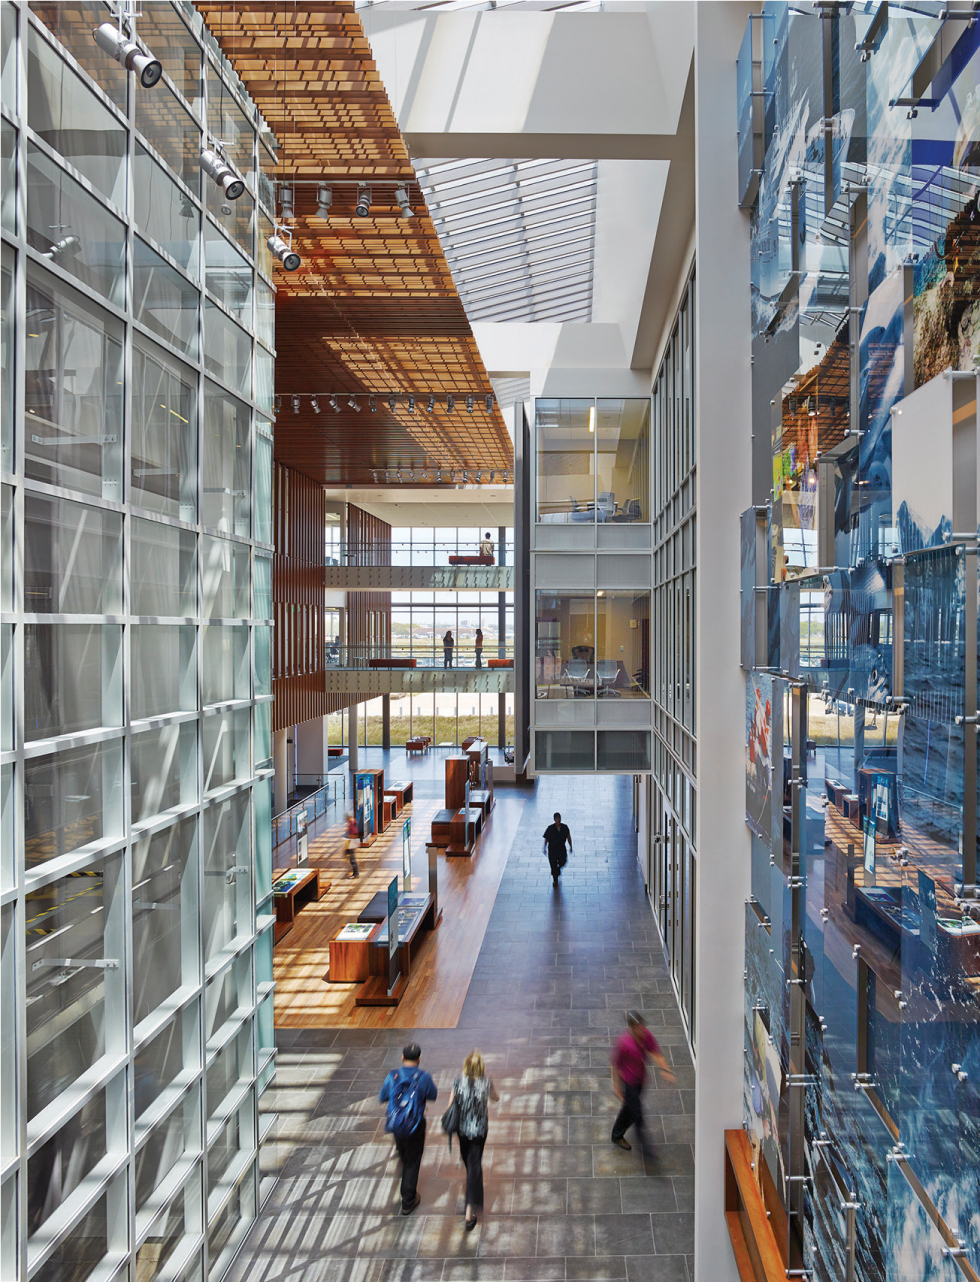 Open ground-to-roof courtyards bring natural light deep into the building and glass walls allow the light to spread widely. PHOTO: ALAN KARCHMER